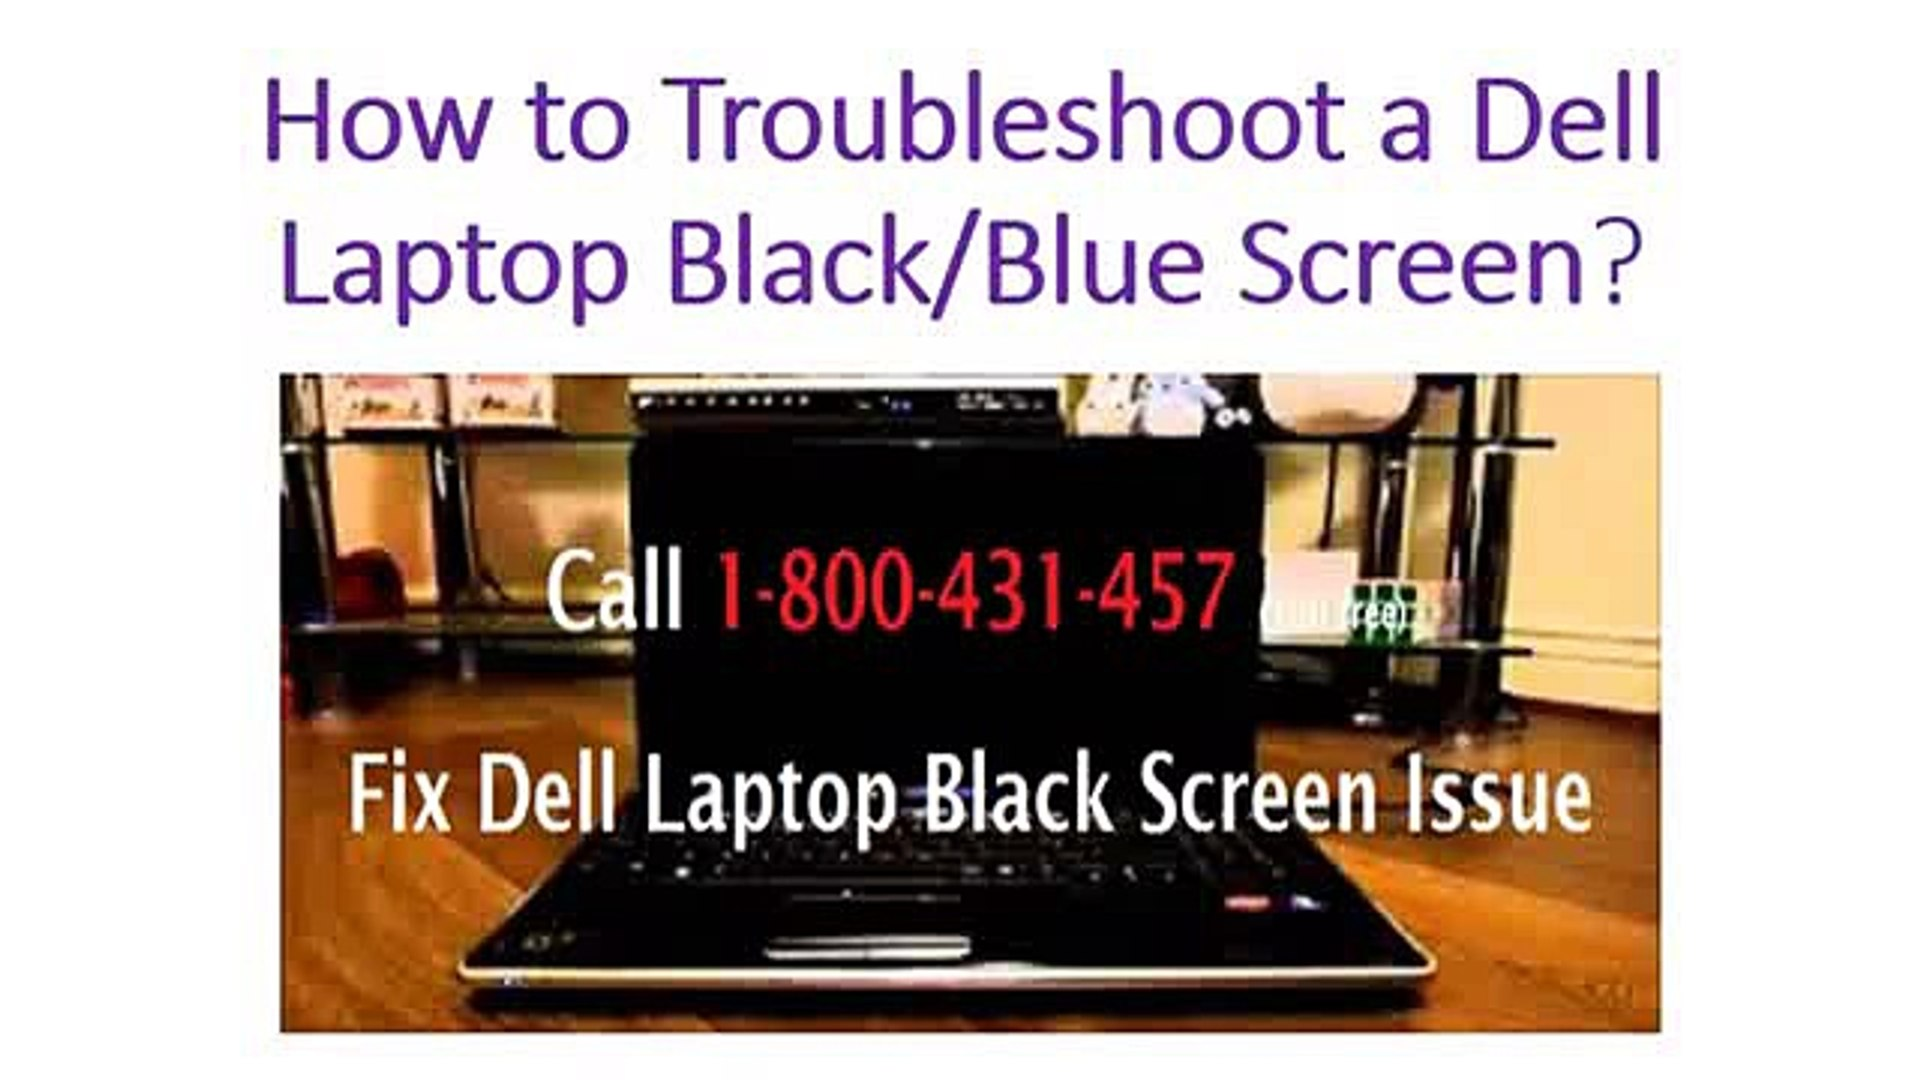 Troubleshoot a Dell Laptop Black/Blue Screen | 1-800-431-457 Australia  Support